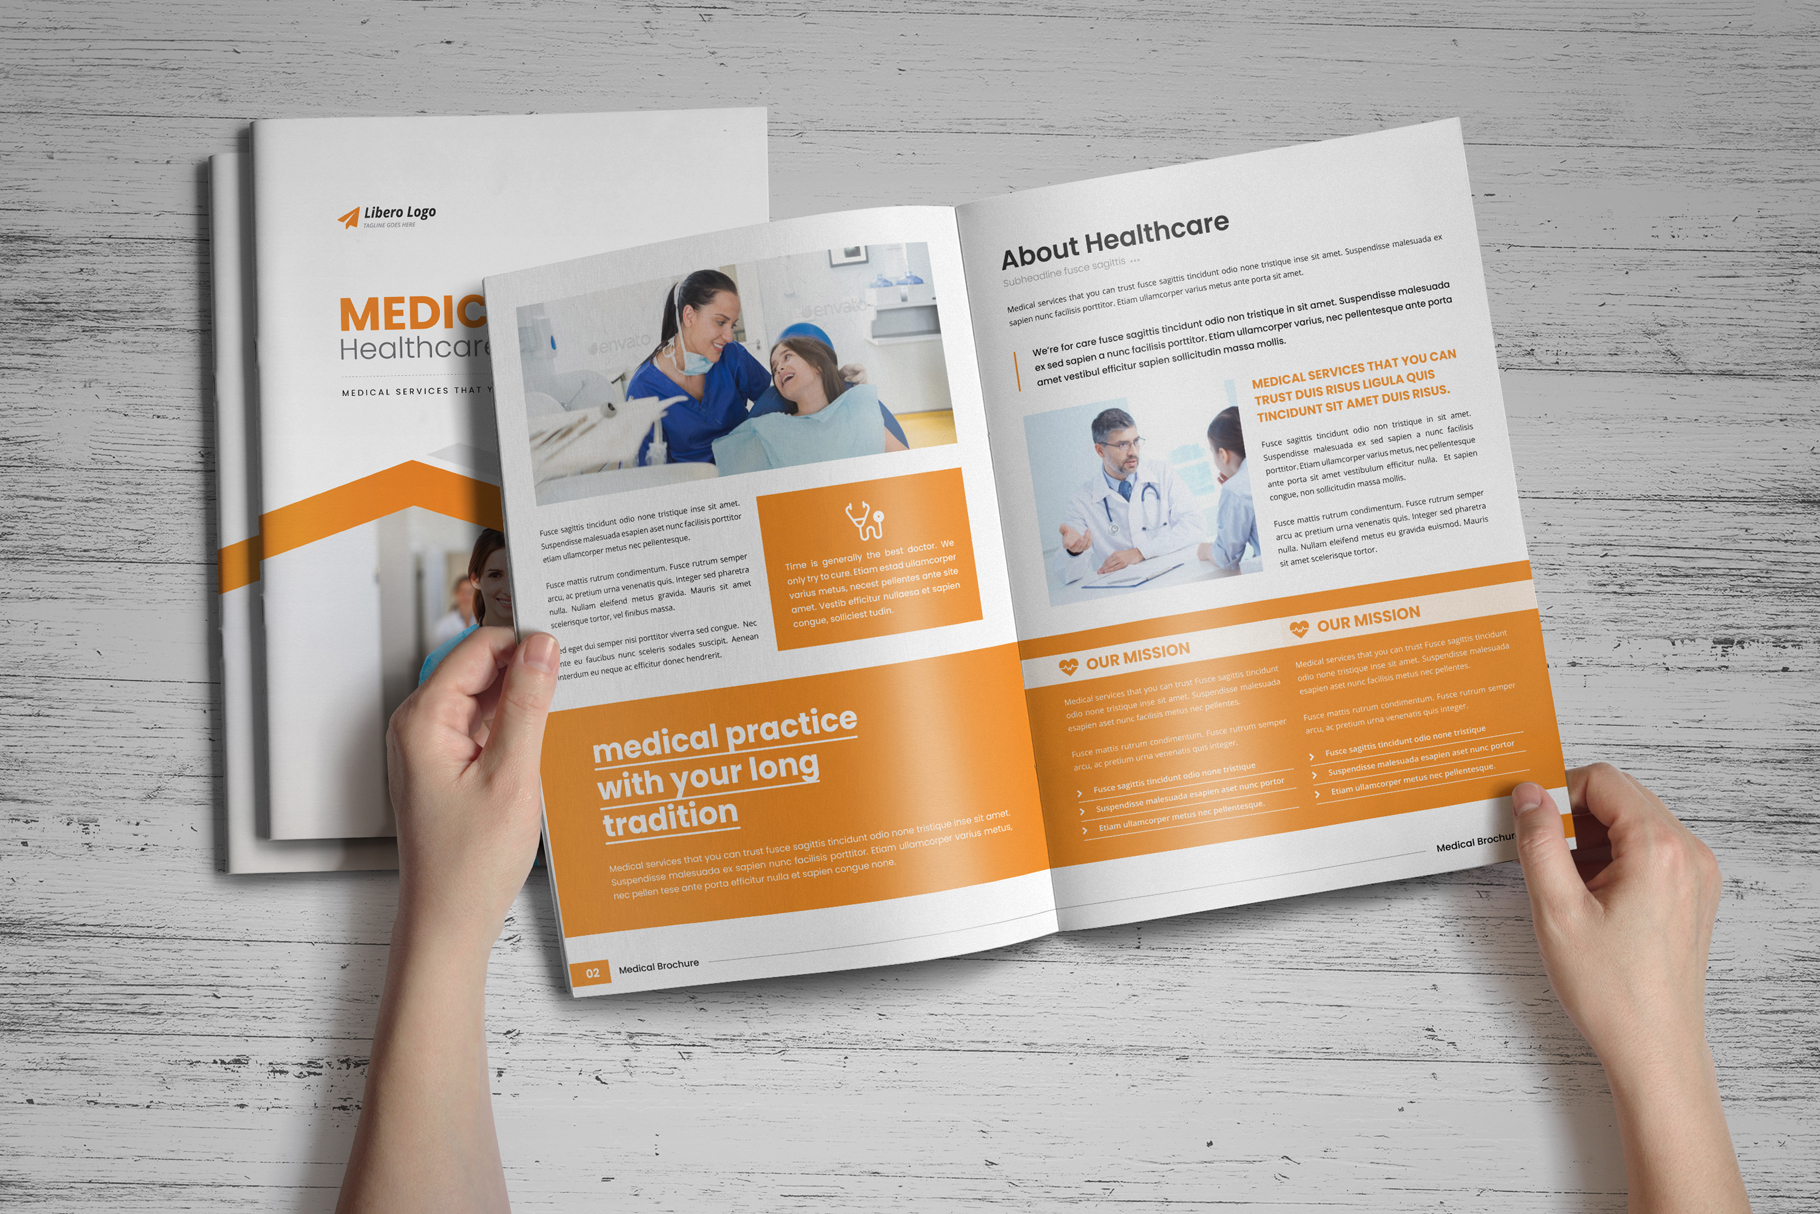 Medical HealthCare Brochure v6 example image 13